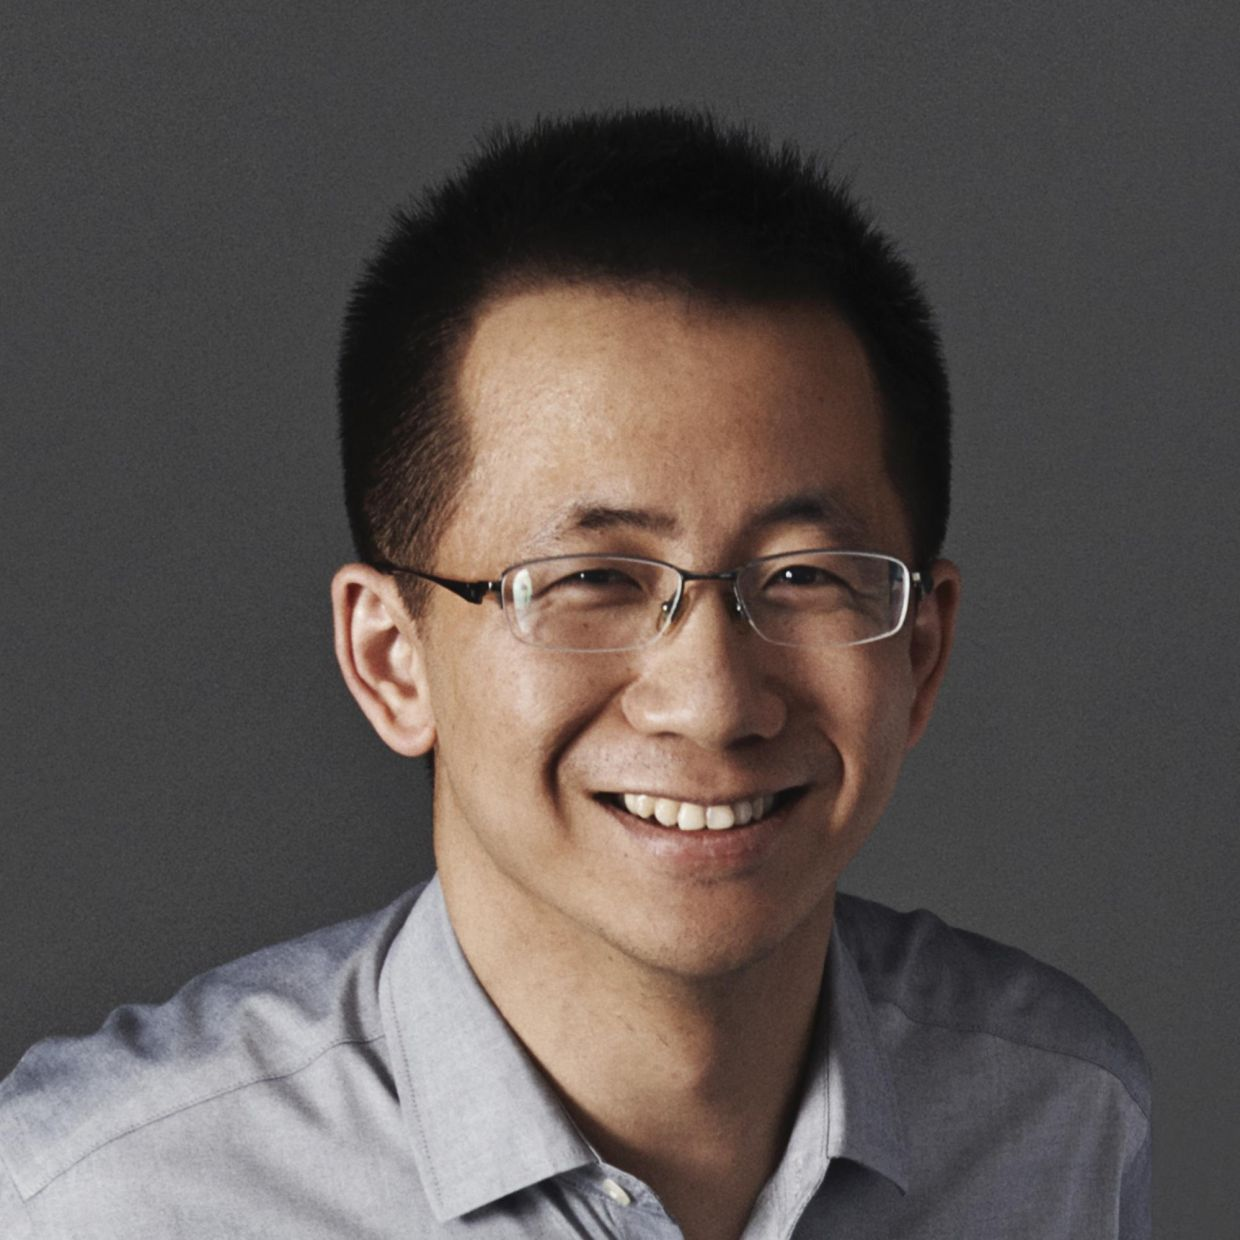 Zhang is among the world's richest people – a distinction that lately has carried increased risks in China. — ByteDance